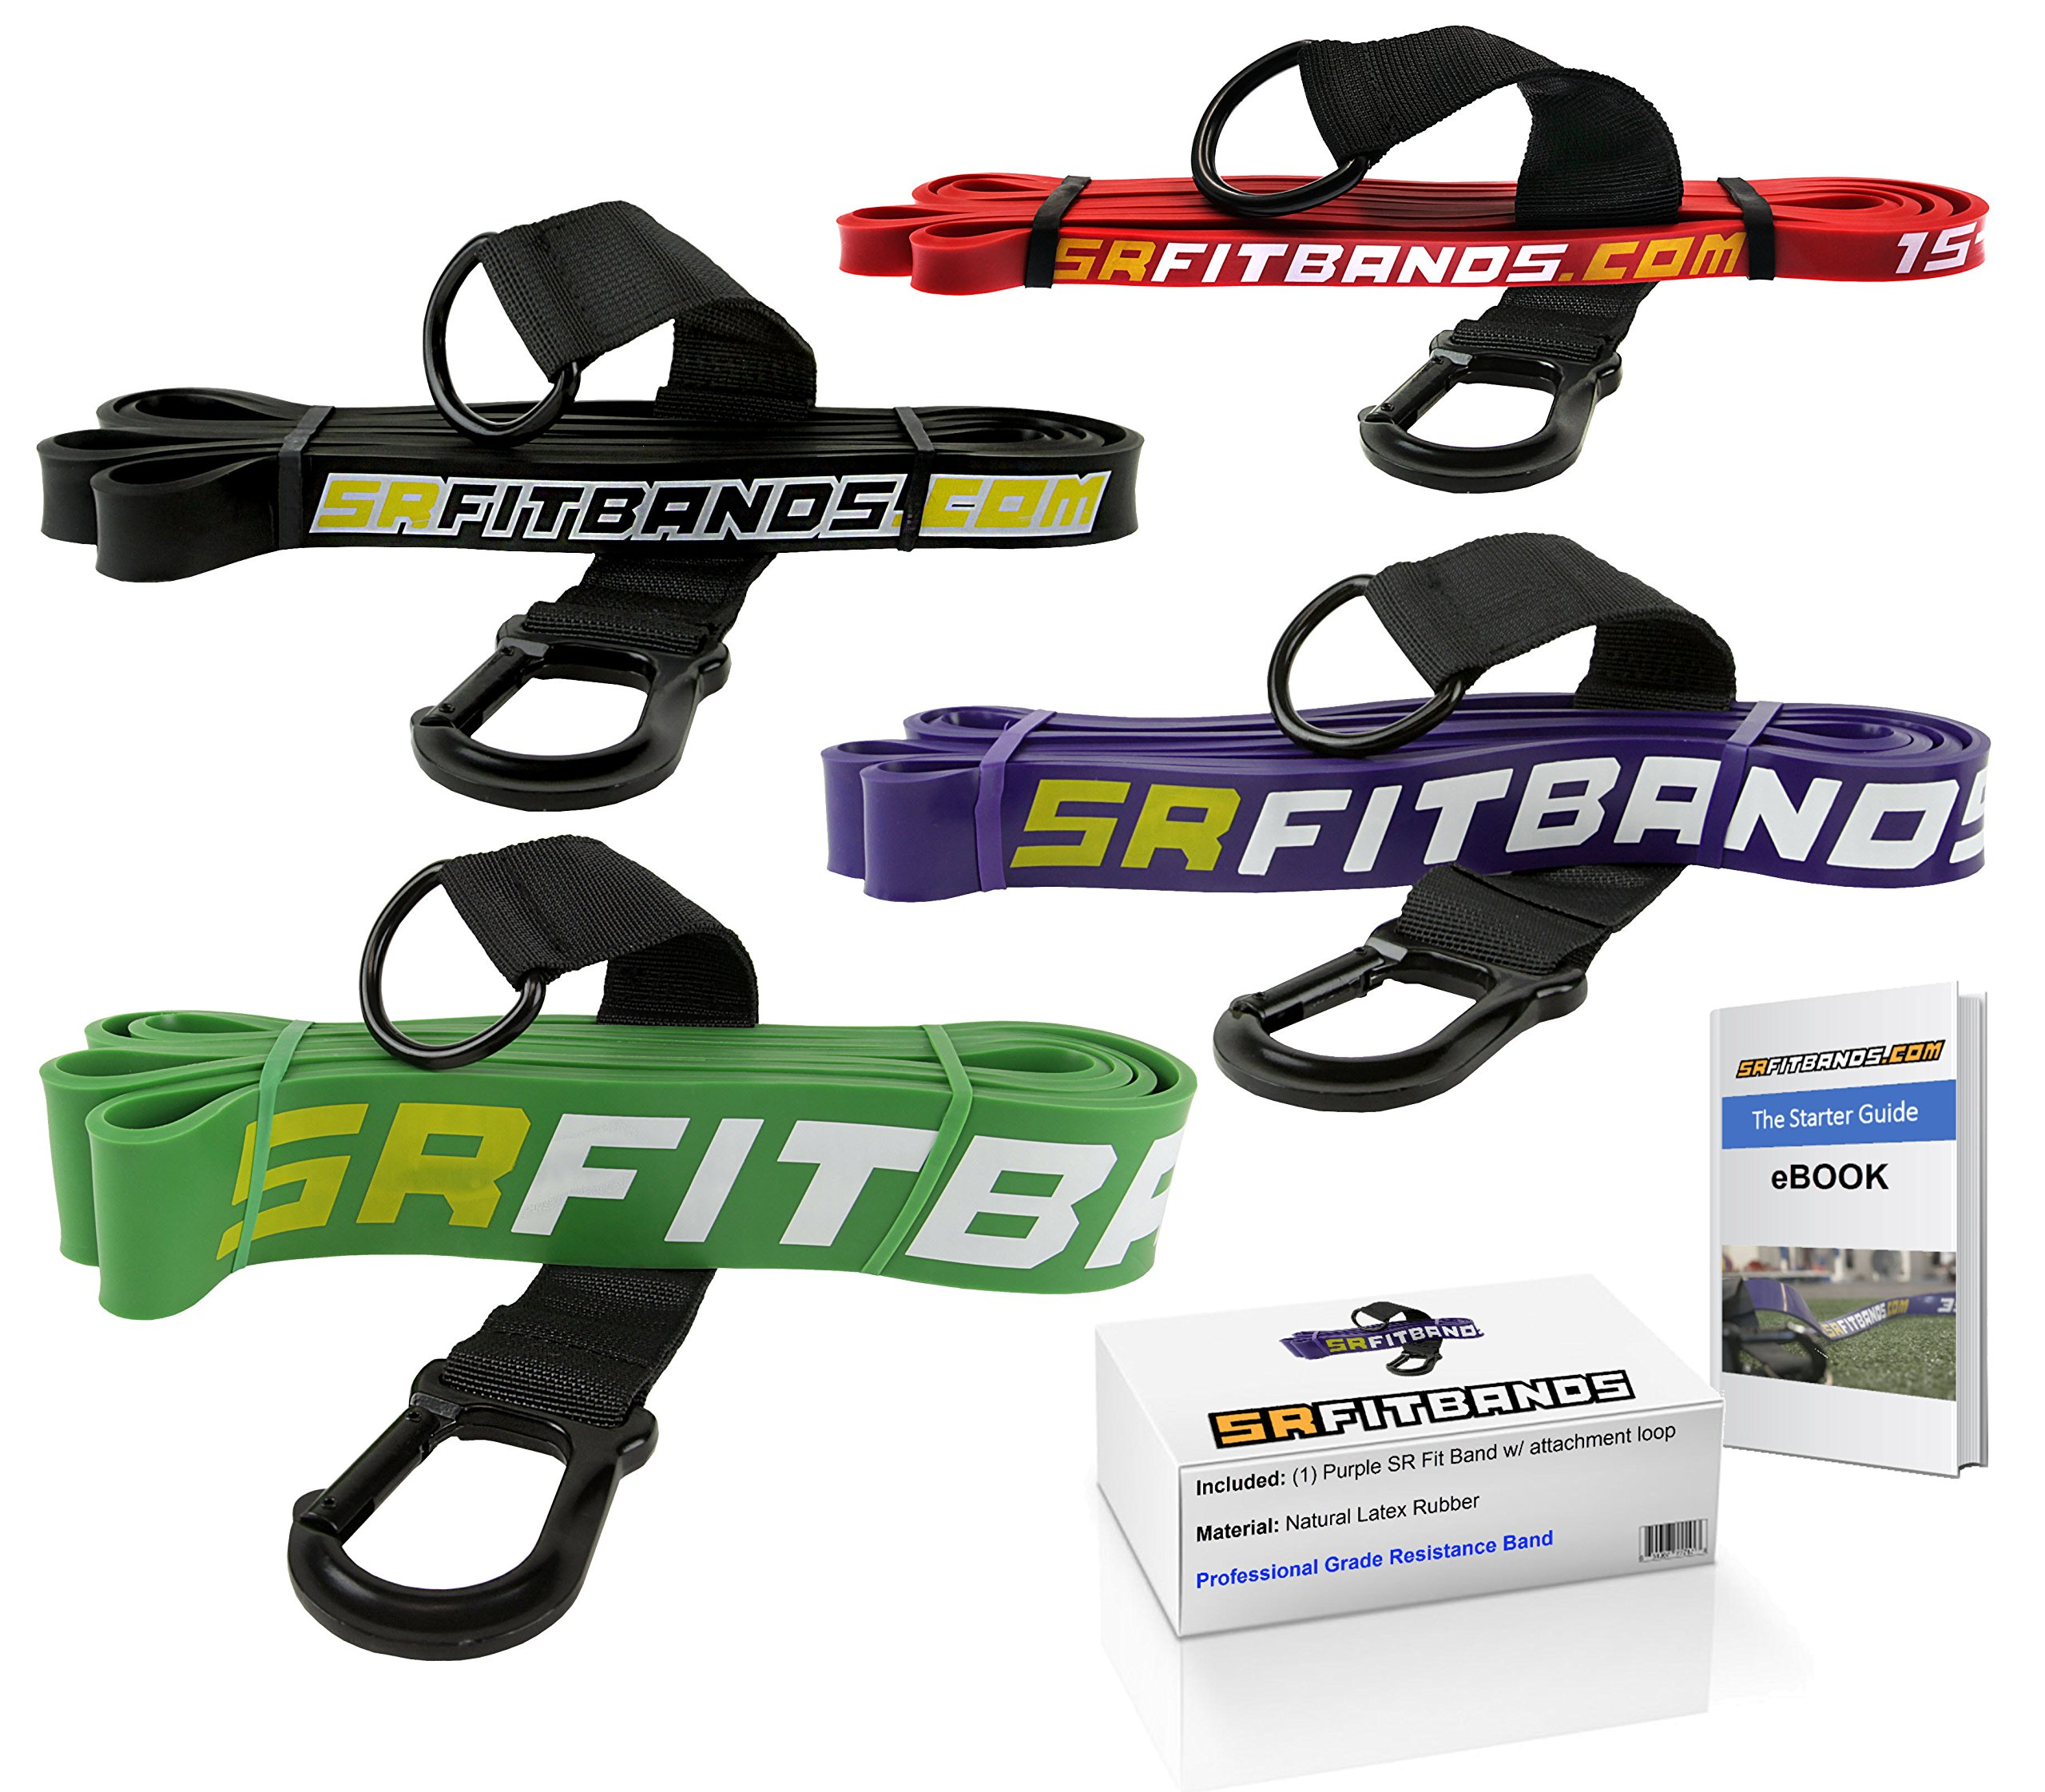 Resistance Band   Exercise Band   Fitness band: featuring the SR fit band attachment loop   Single Resistance Band - 41'' loop (Purple   35-85 lbs)